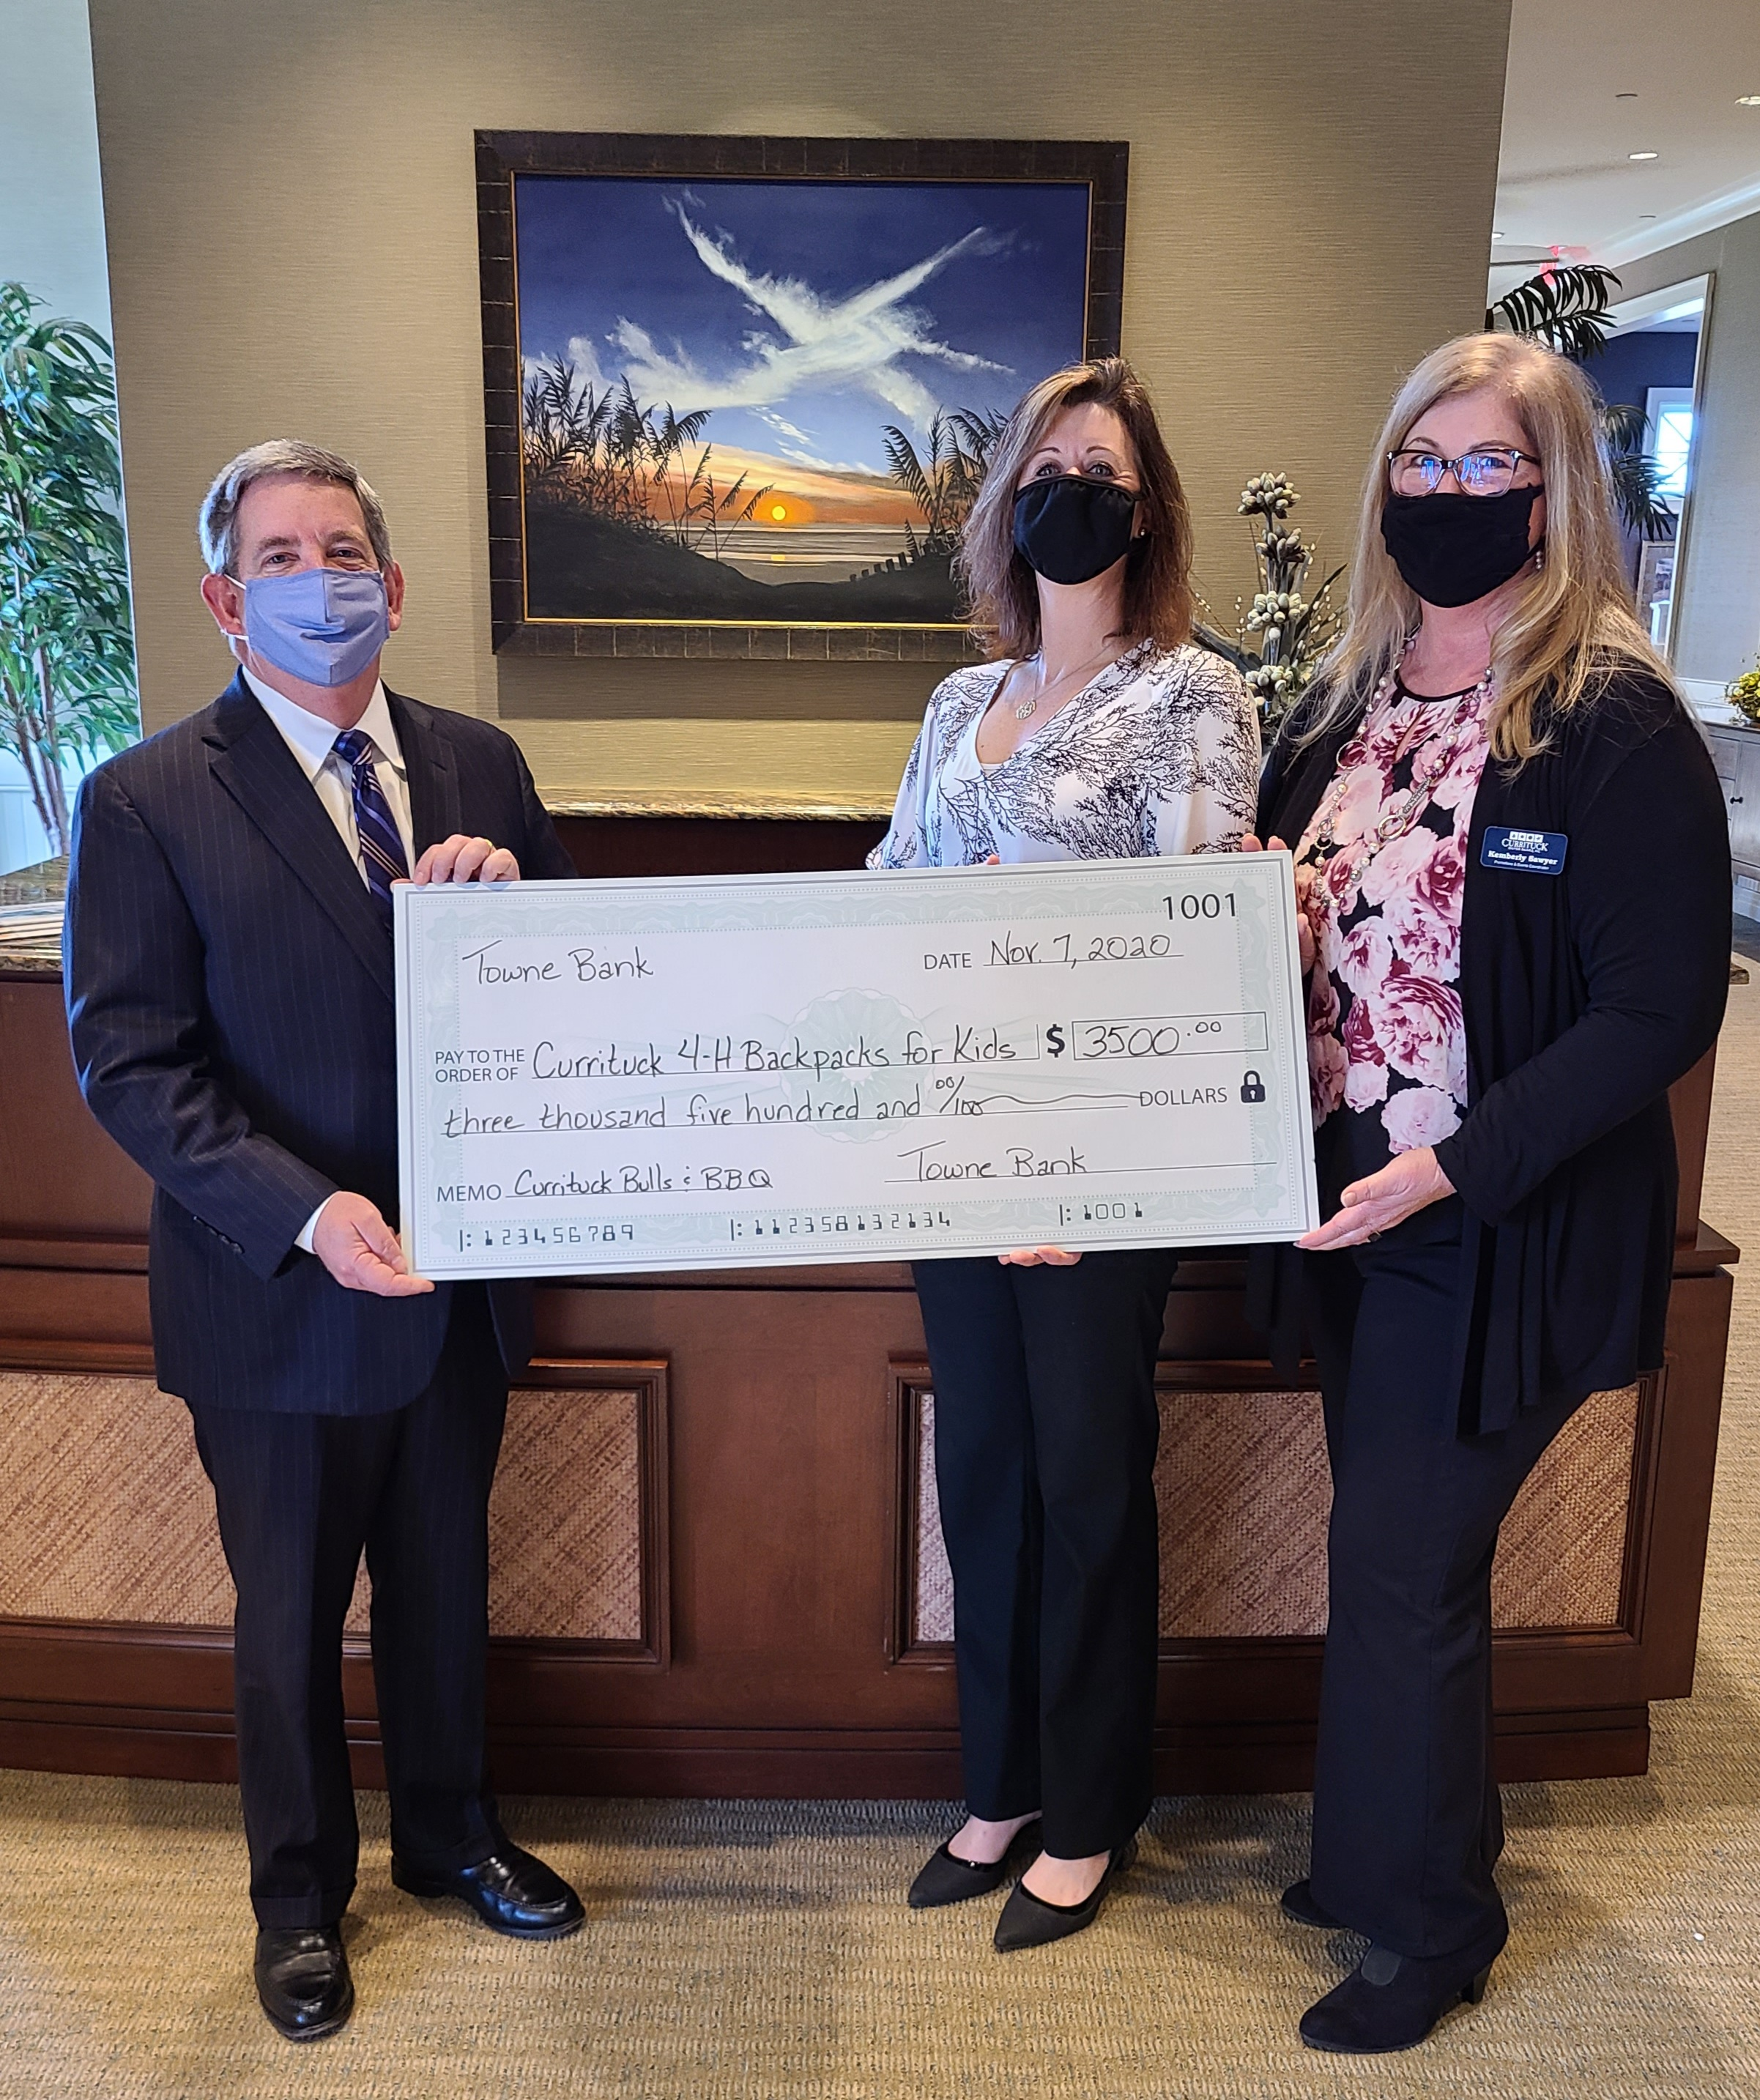 Taylor Sugg, President of TowneBank,, Cameron Lowe, Director of Currituck NC Extension and Kemberly Sawyer, Promo & Events Coordinator of Currituck Travel & Tourism holidng large donation check